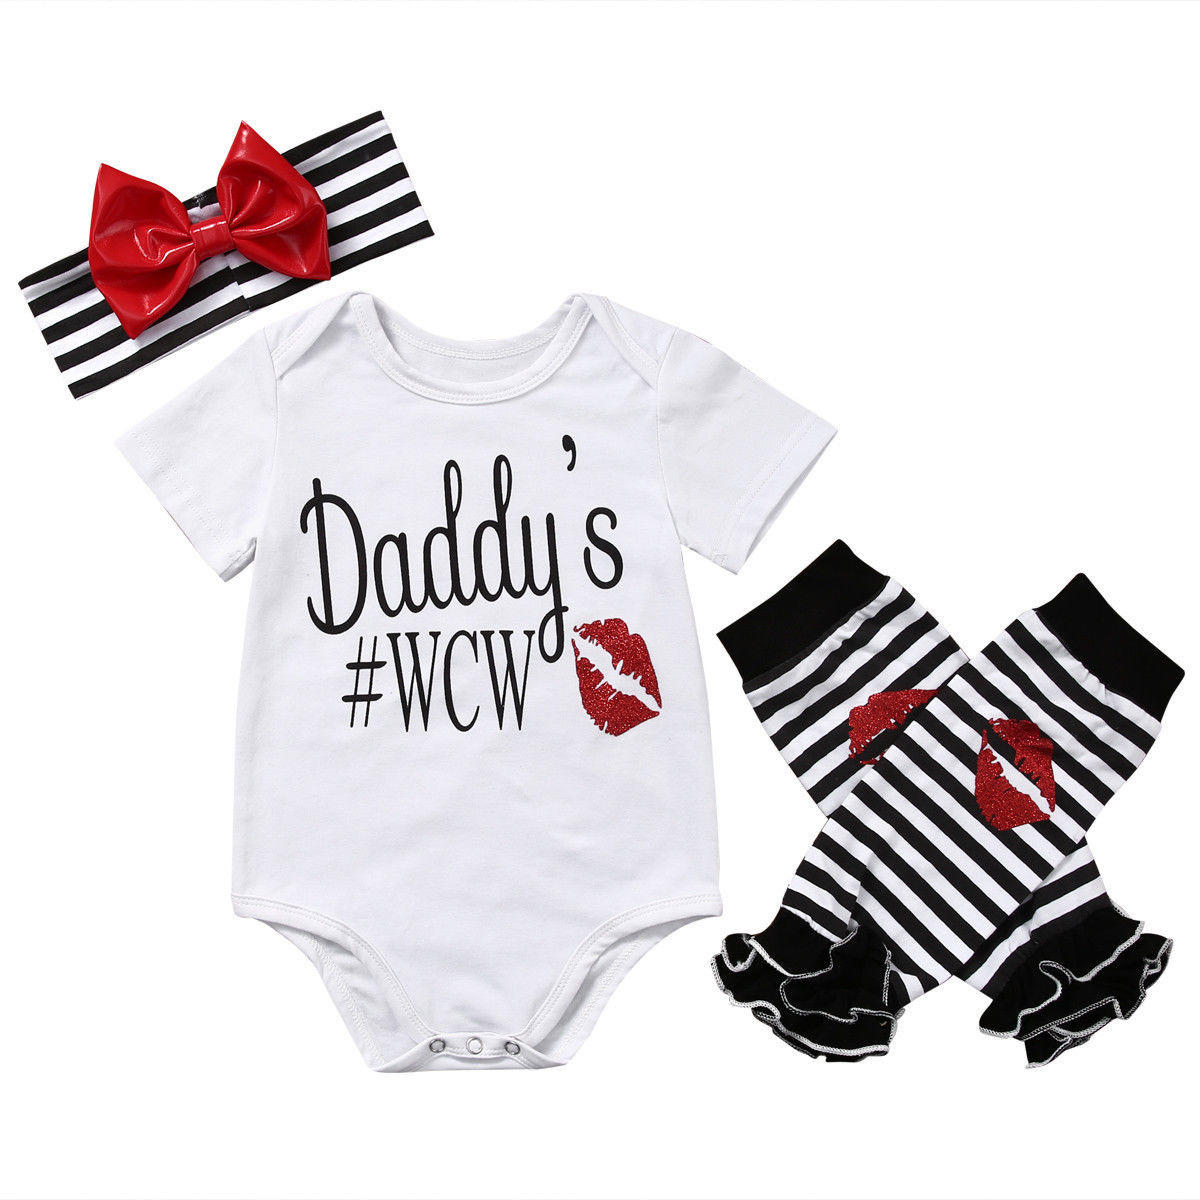 1b44e8904 3Pc Newborn Baby Girl kids clothing sets suit Daddy Romper Jumpsuit  Headband Outfit C